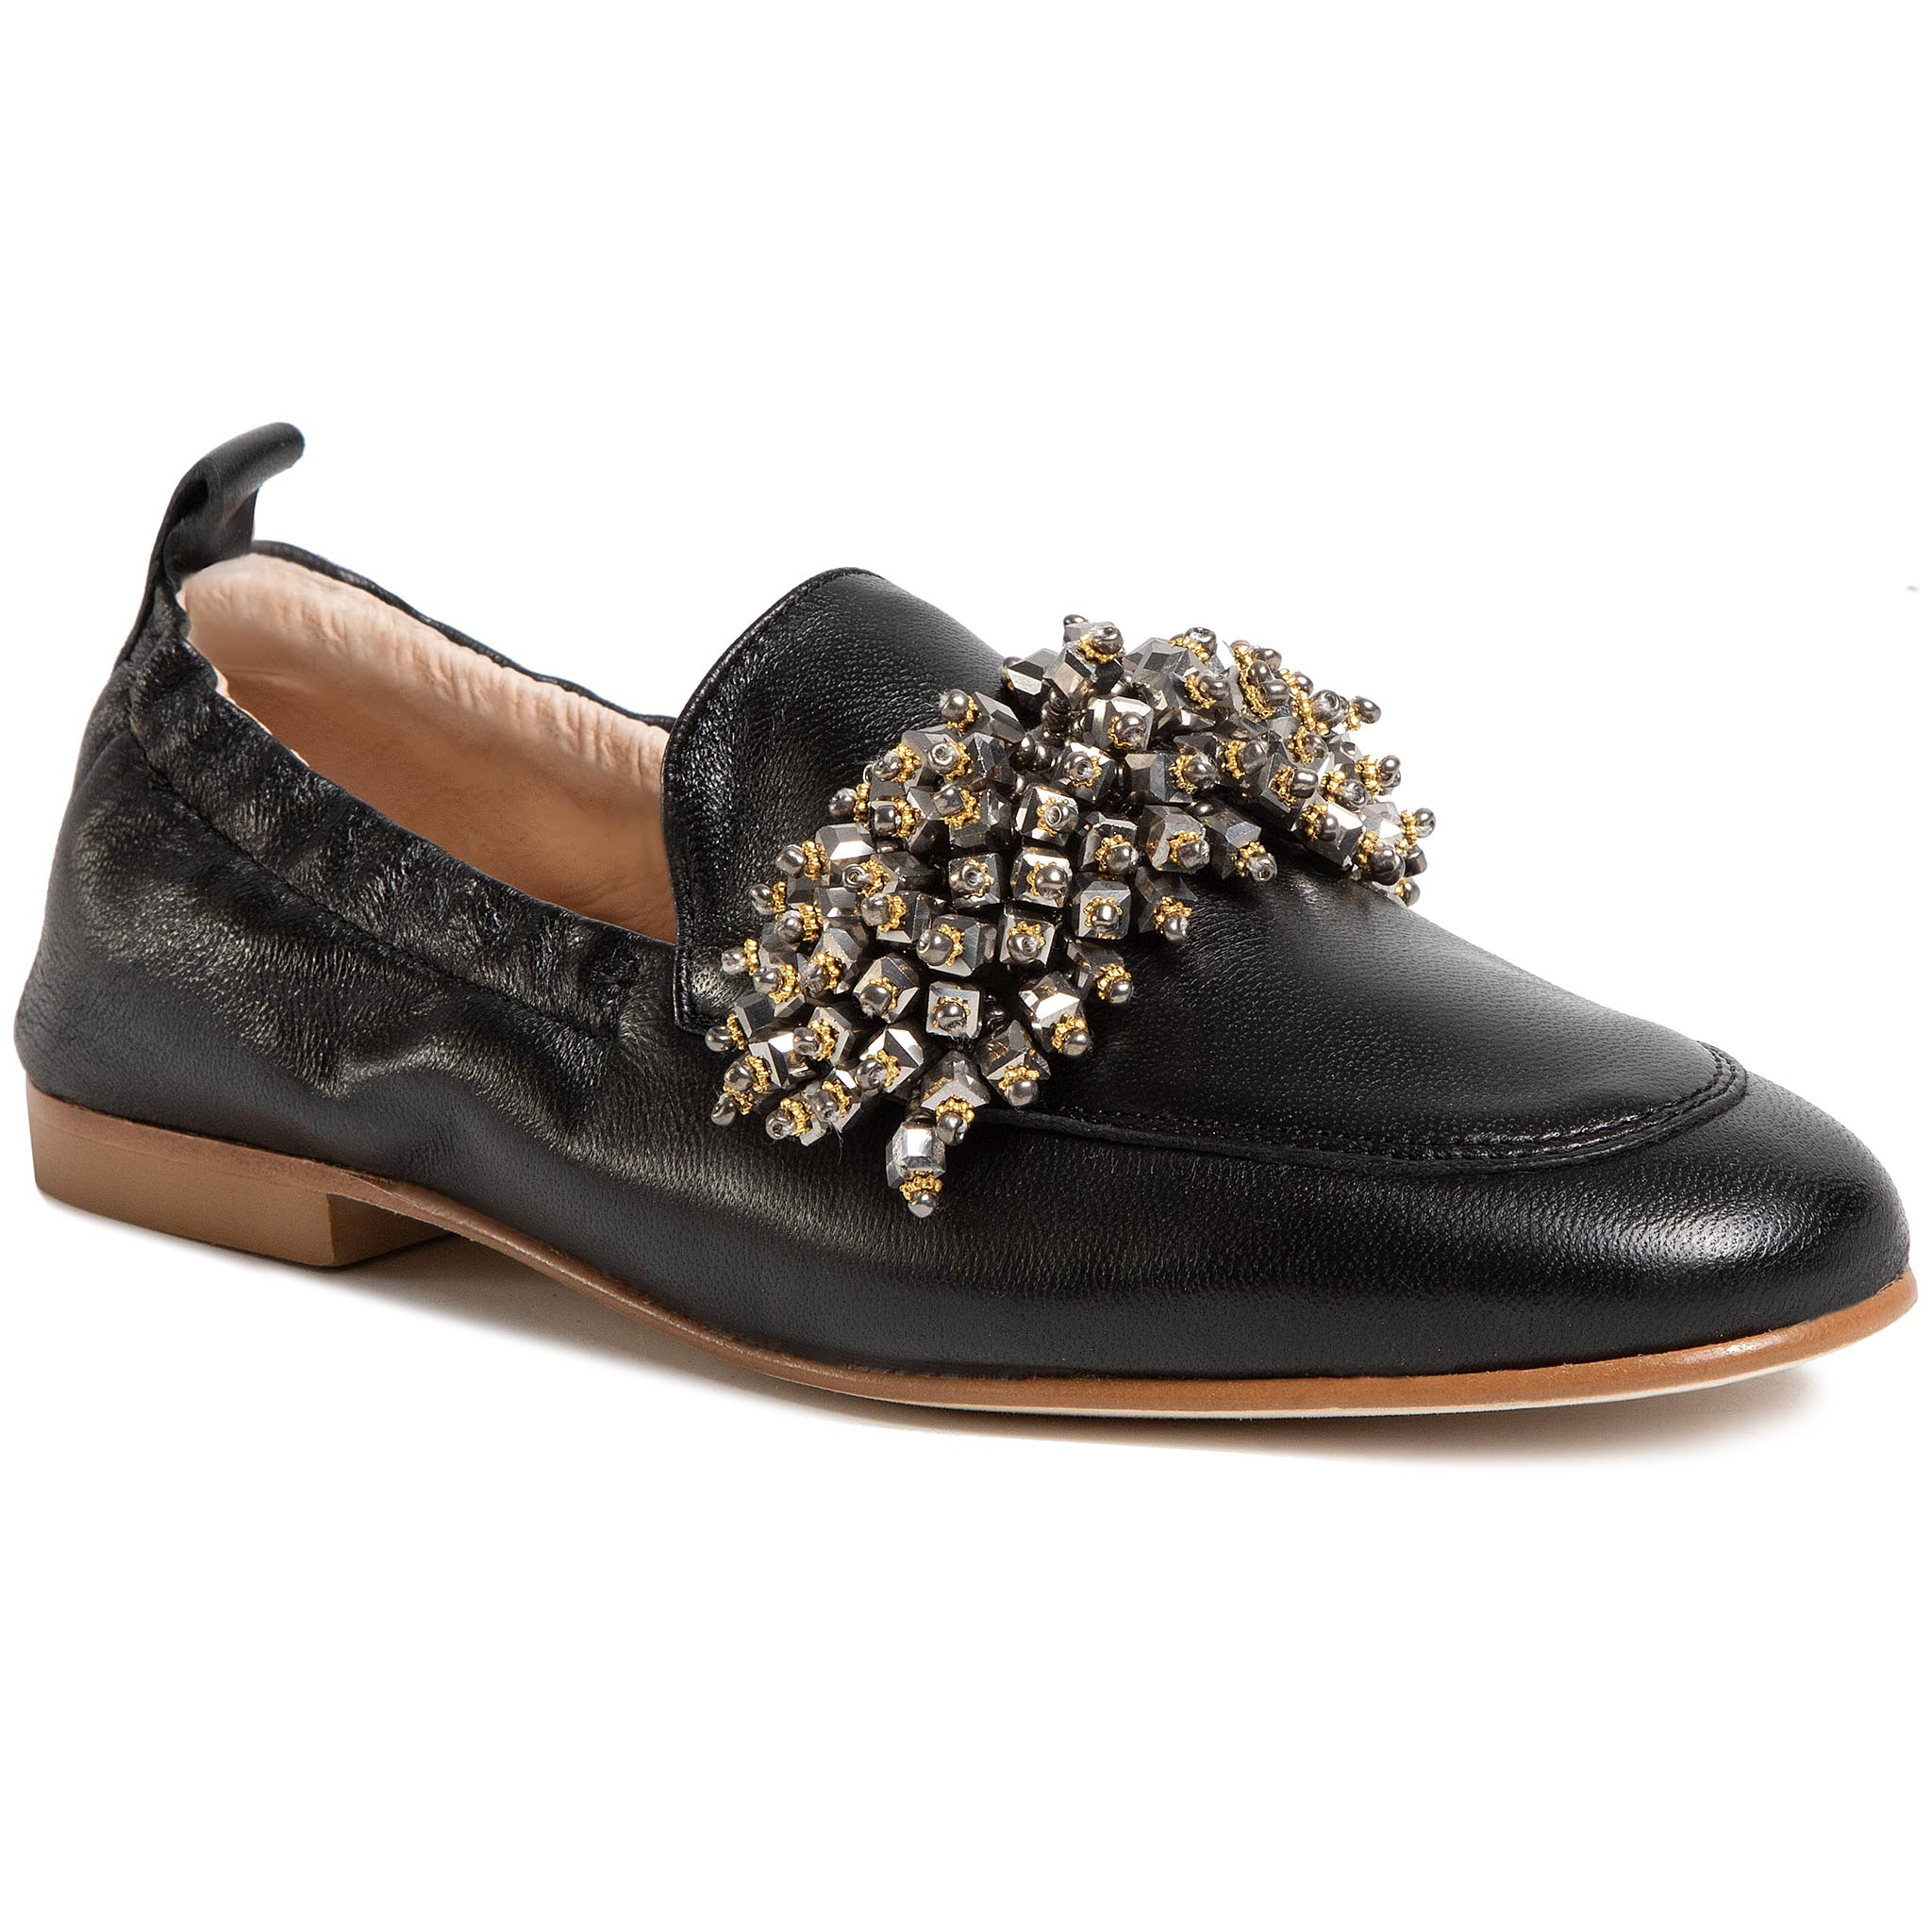 Loafers HEGO'S MILANO - 1287 Nero